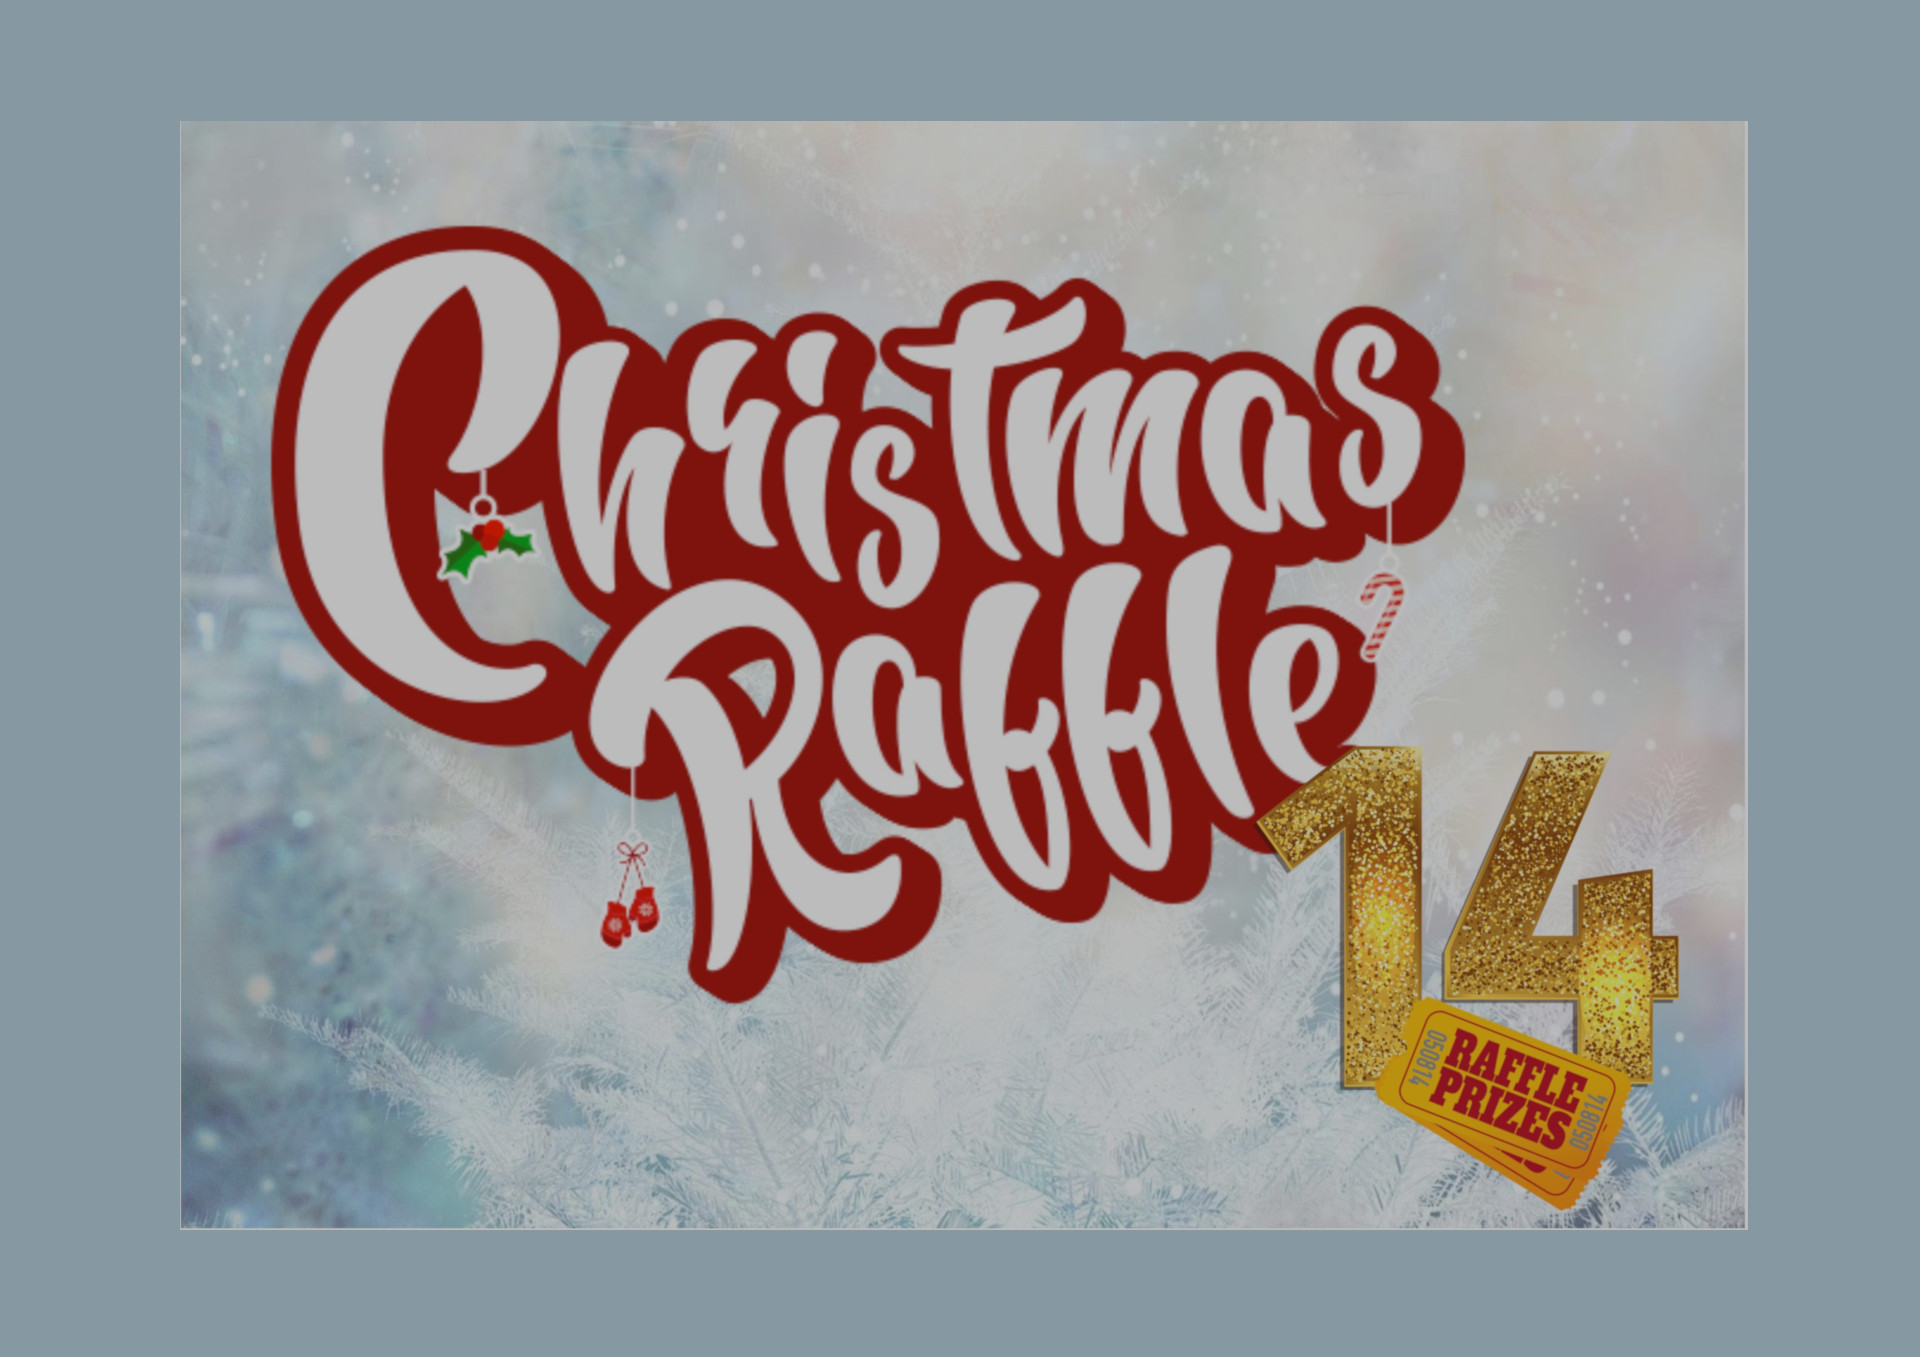 Our Mega Christmas Raffle is now available online